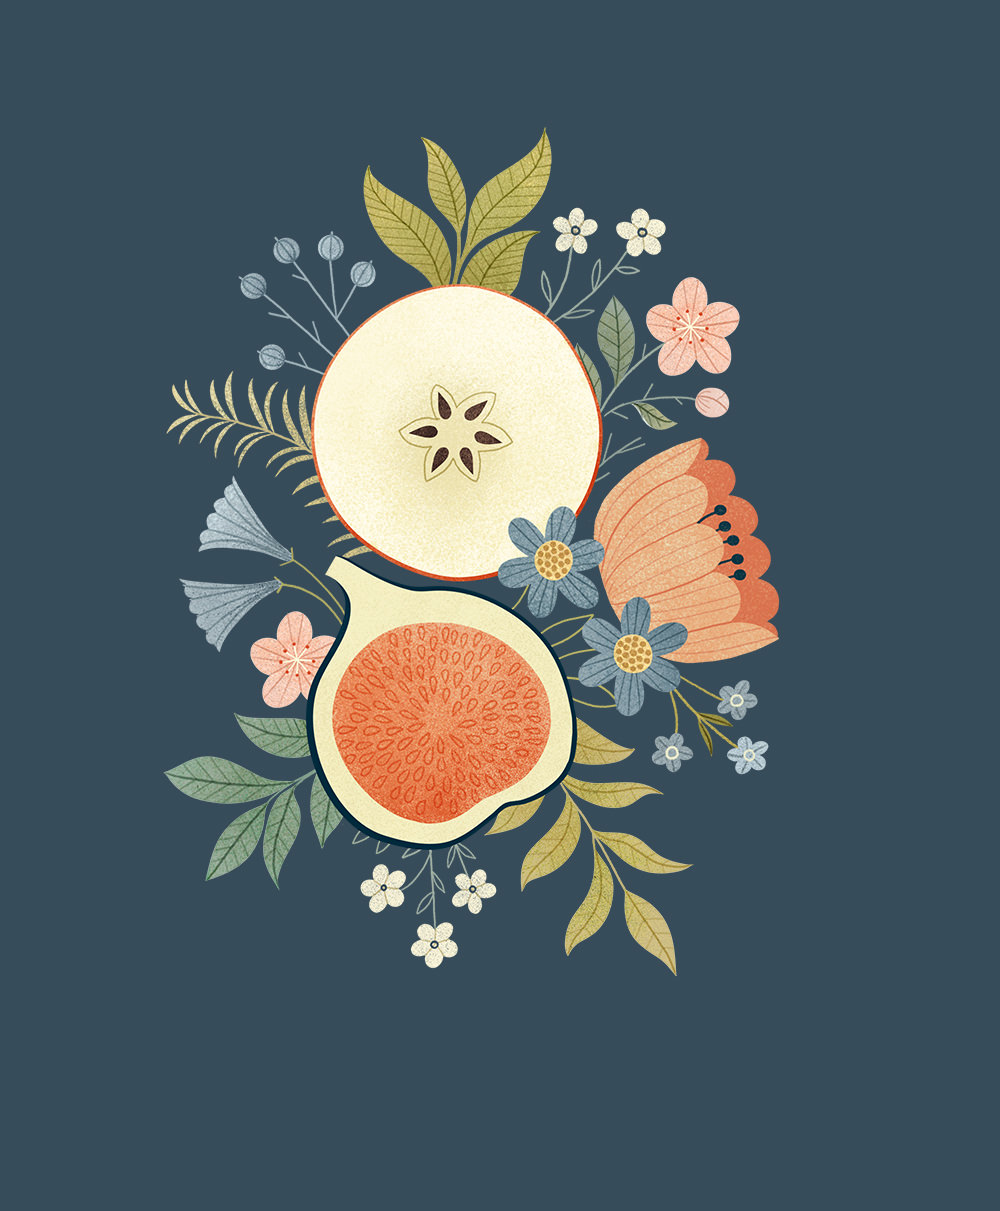 Fruit Bouquet. Illustration by Clare Owen.